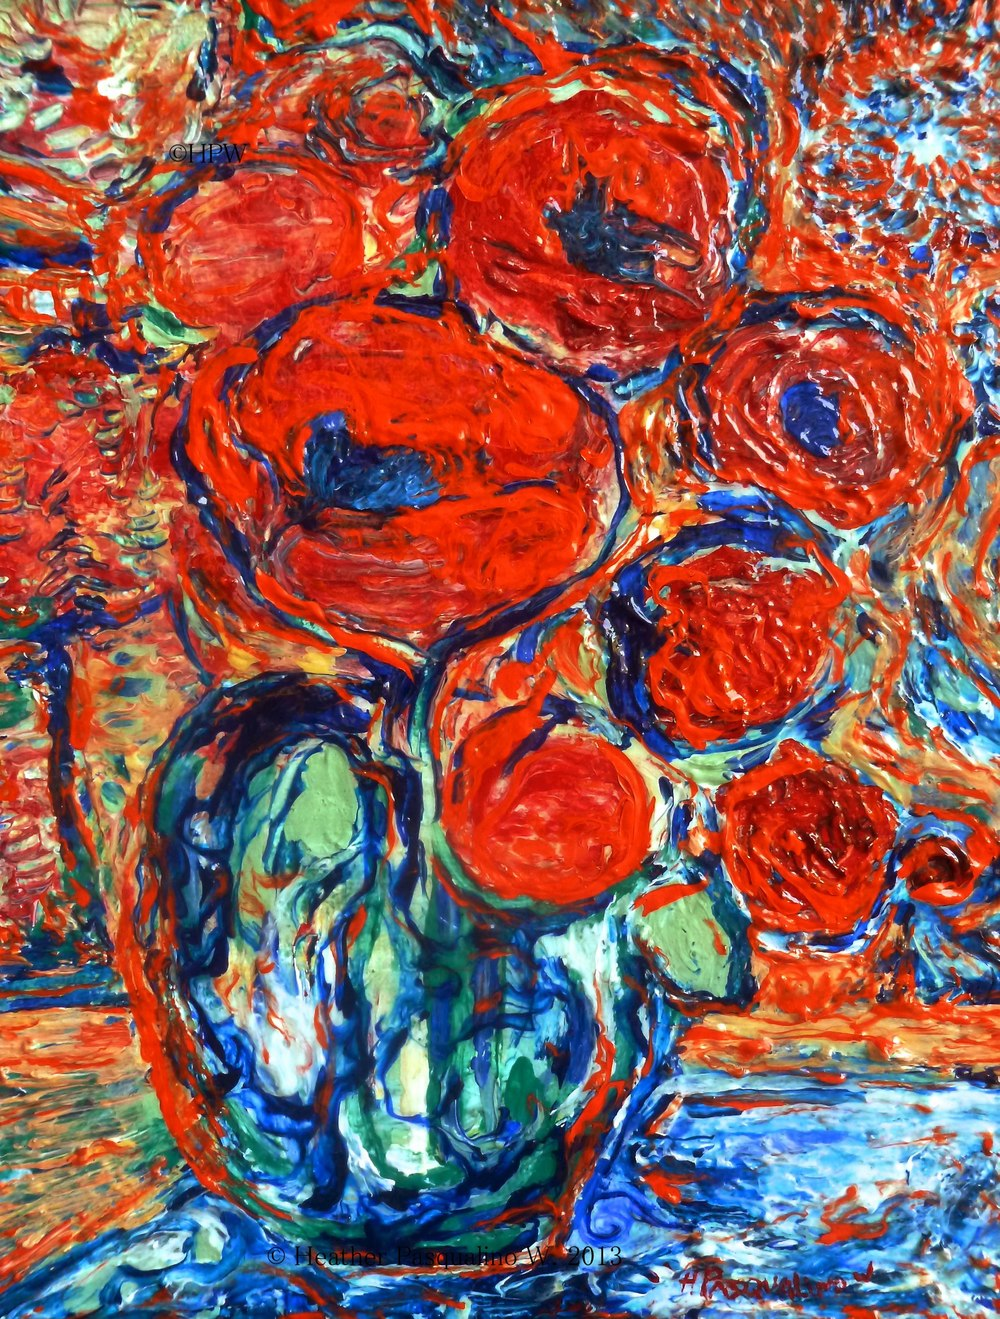 Orange Poppies on Blue / O riginal painting by Heather Pasqualino.